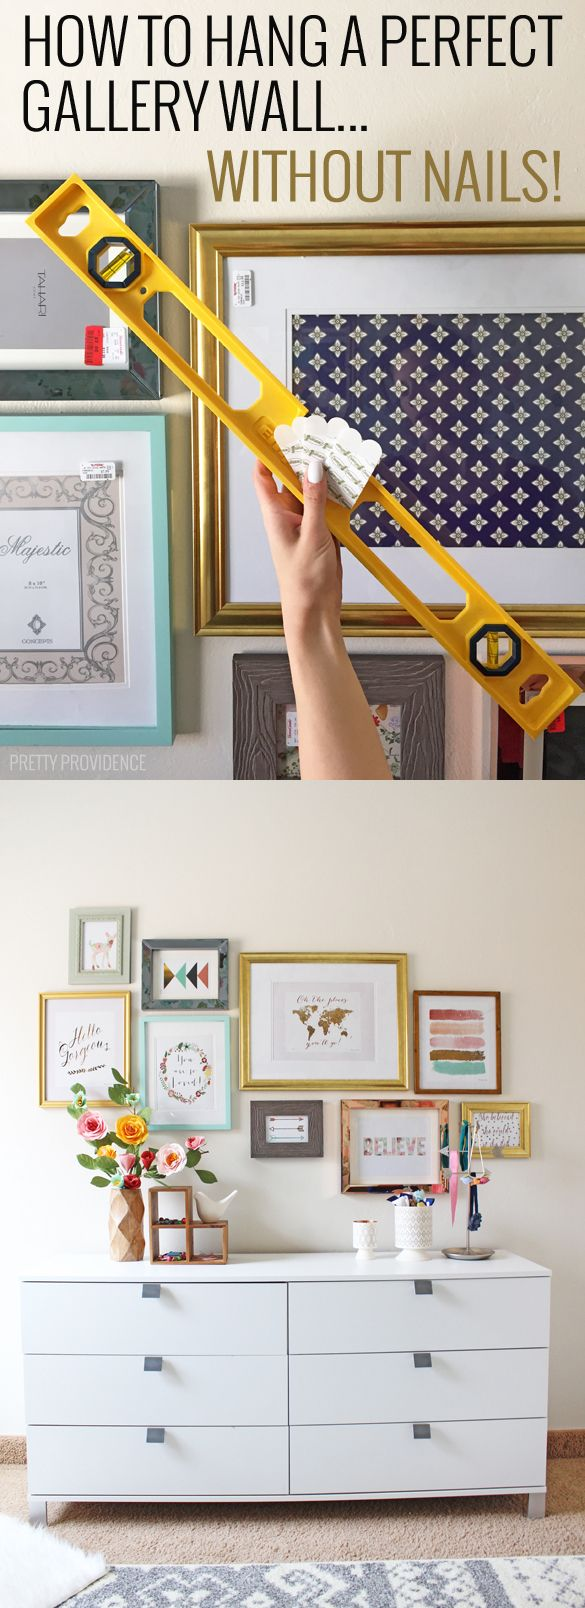 How to Hang a Perfect Gallery Wall... Without Nails | Pinterest ...